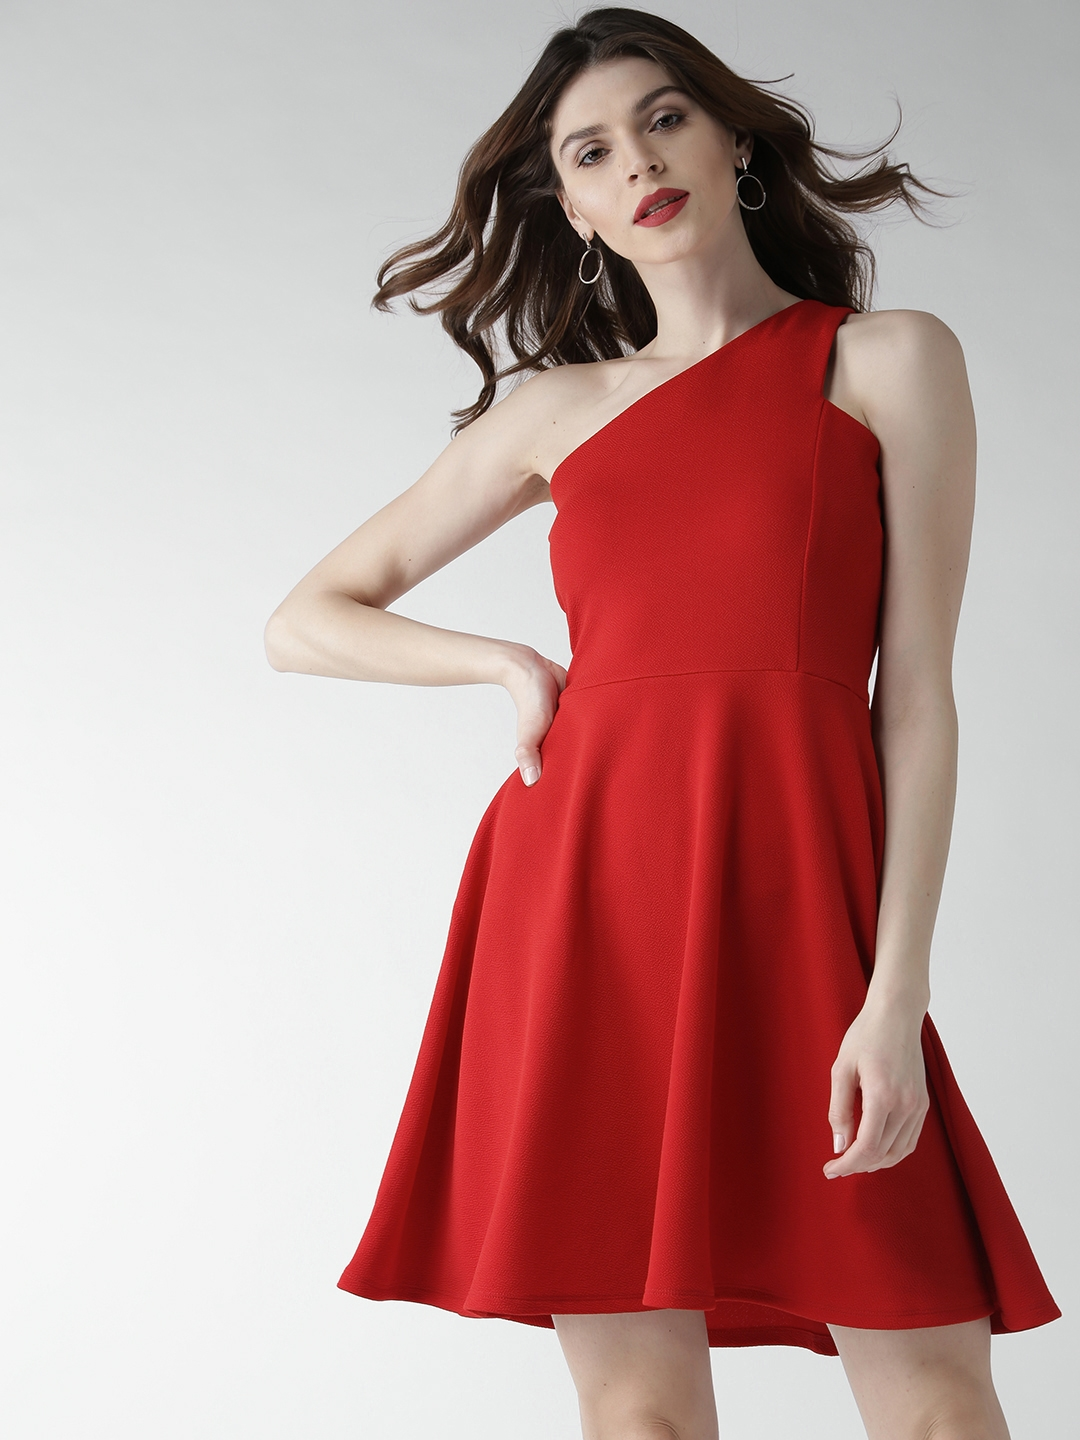 ab0f7060aa Buy 20Dresses Women Red Solid One Shoulder Fit   Flare Dress ...